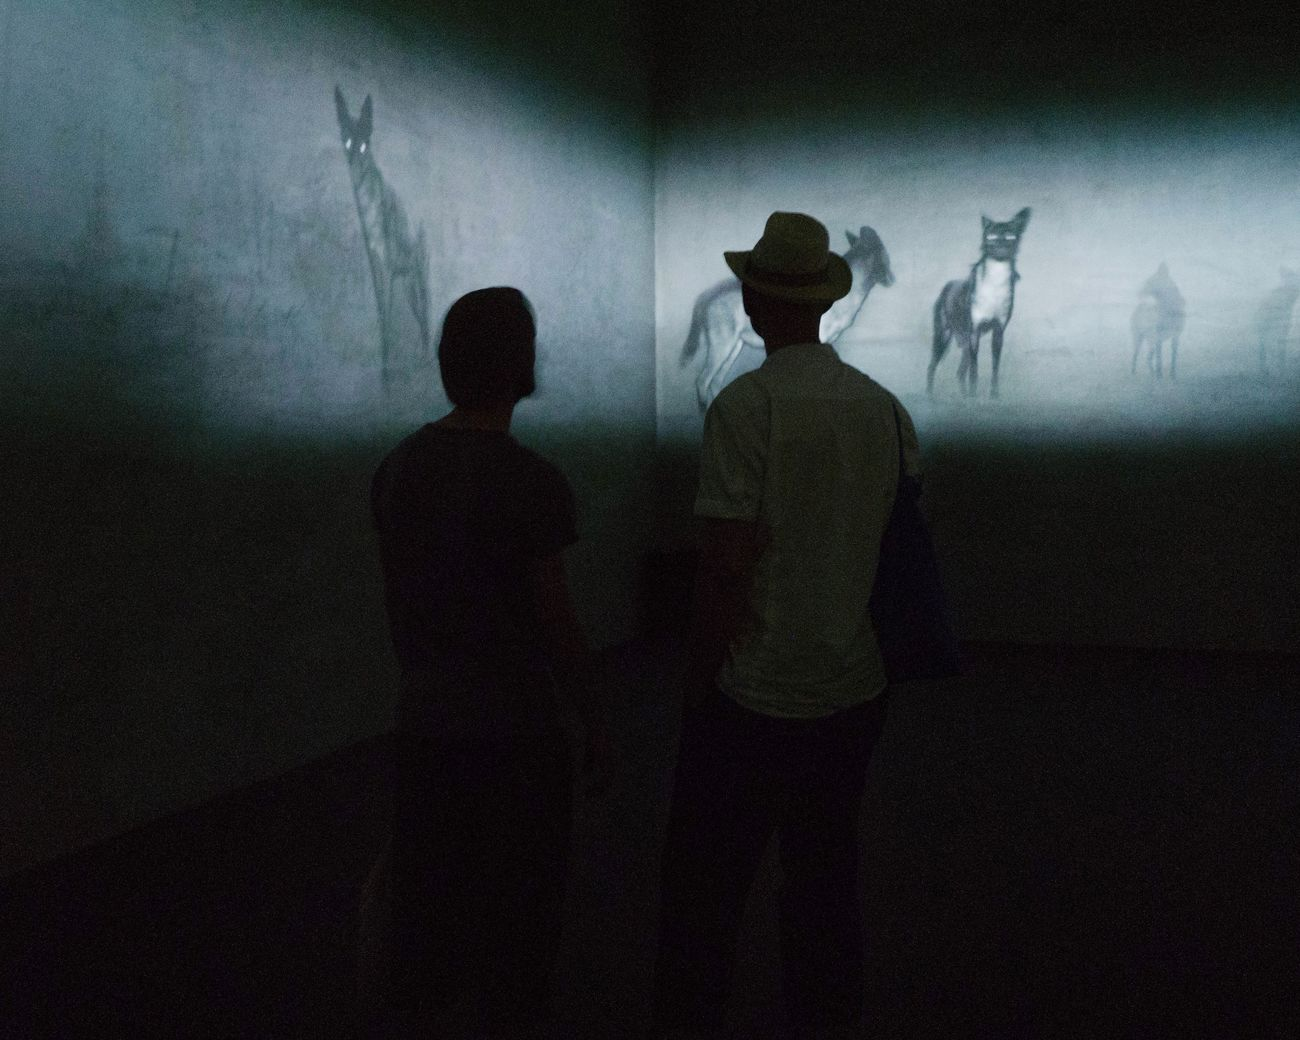 Art Basel / Michal Rovner Silhouette Real People Indoors  Shadow Two People Men Standing Art Arts Culture And Entertainment Art Basel The Street Photographer - 2017 EyeEm Awards People